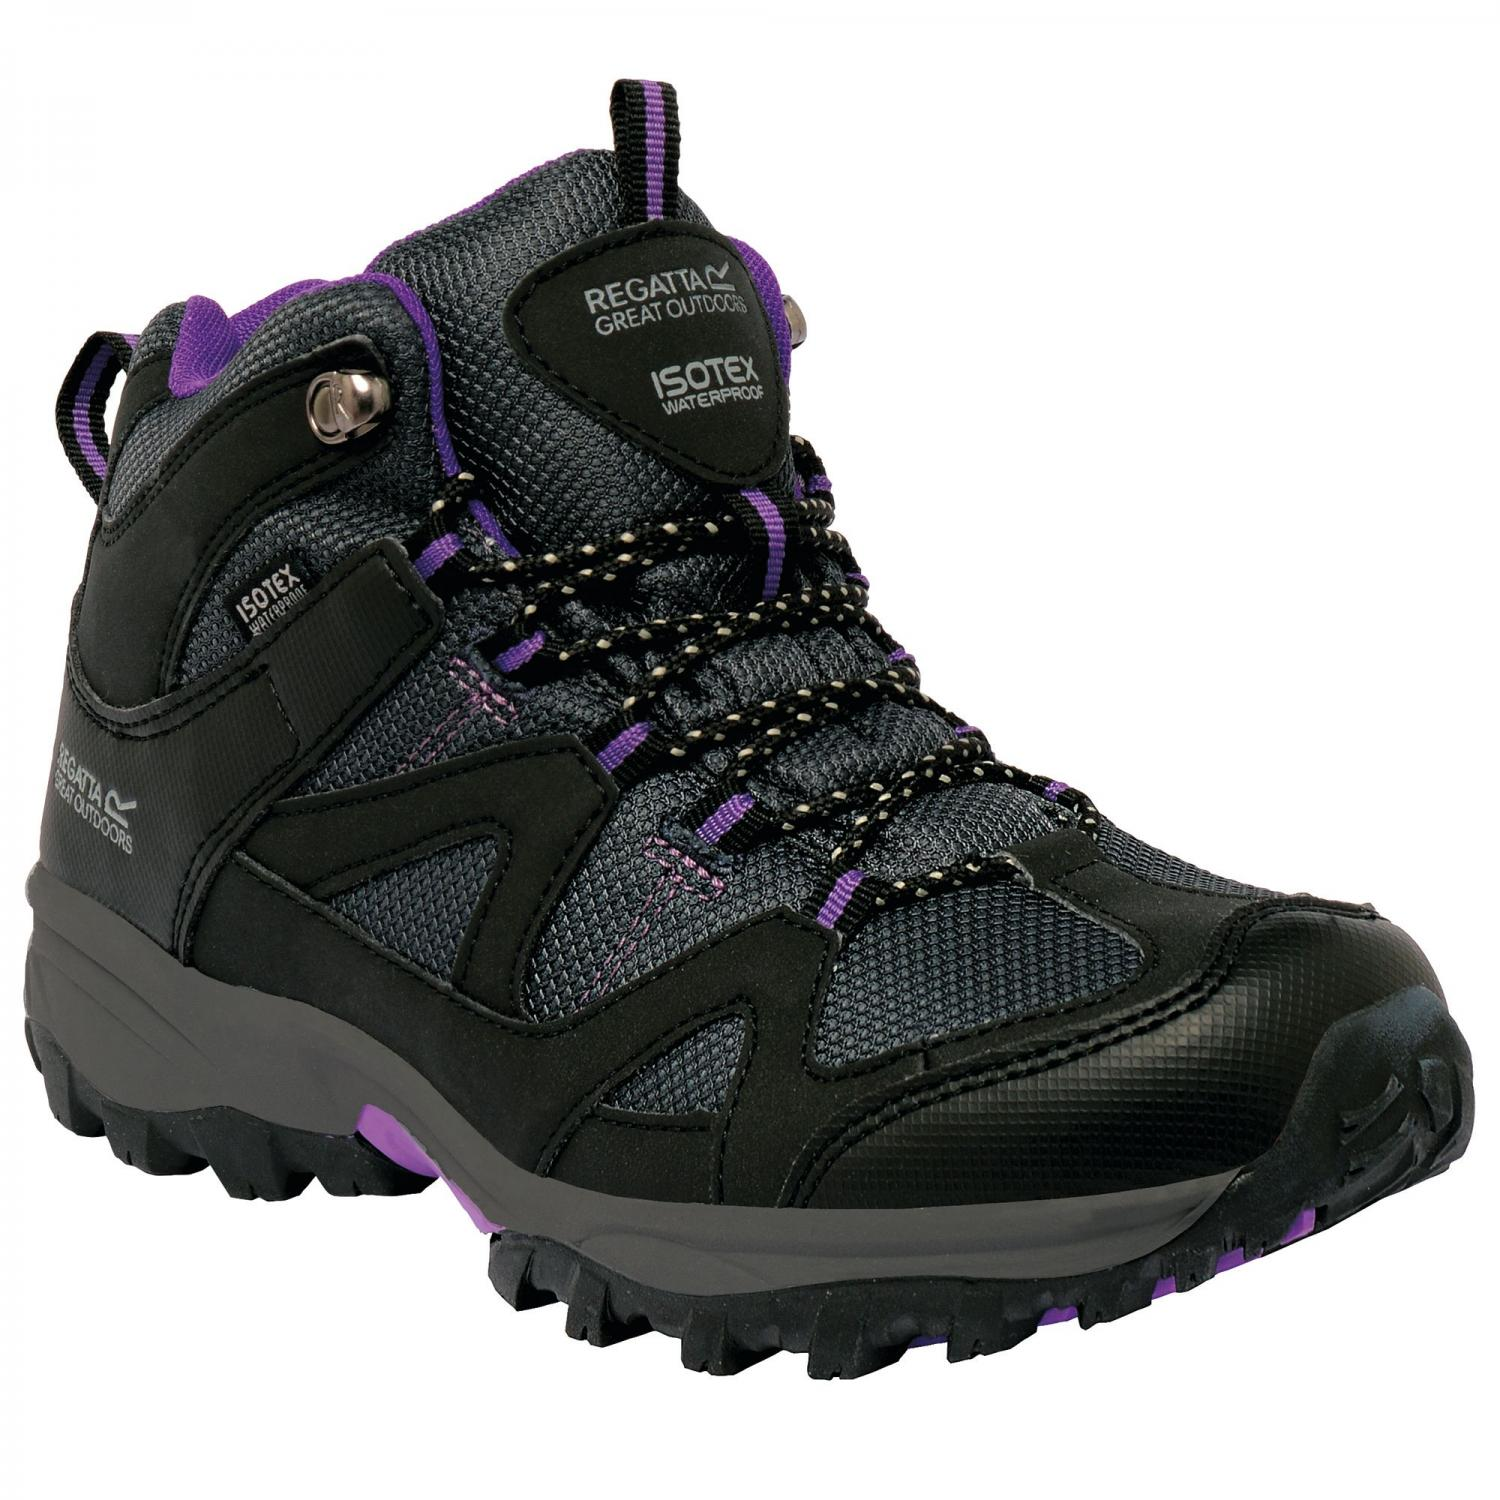 Lady Gatlin Mid Walking Boot Black Purple